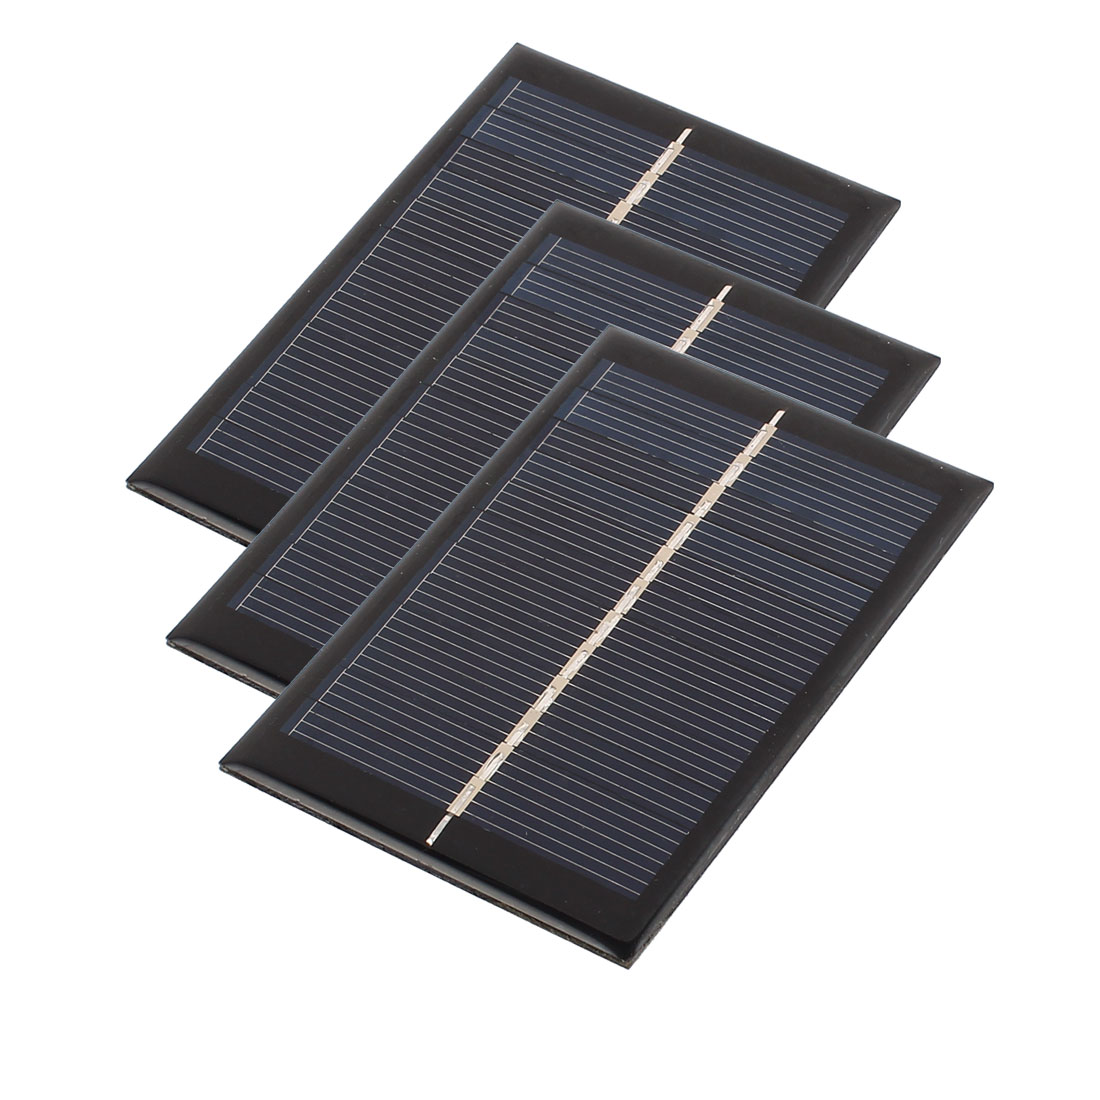 3Pcs DC 6V 0.6W Rectangle Energy Saving Solar Cell Panel Module for Charger